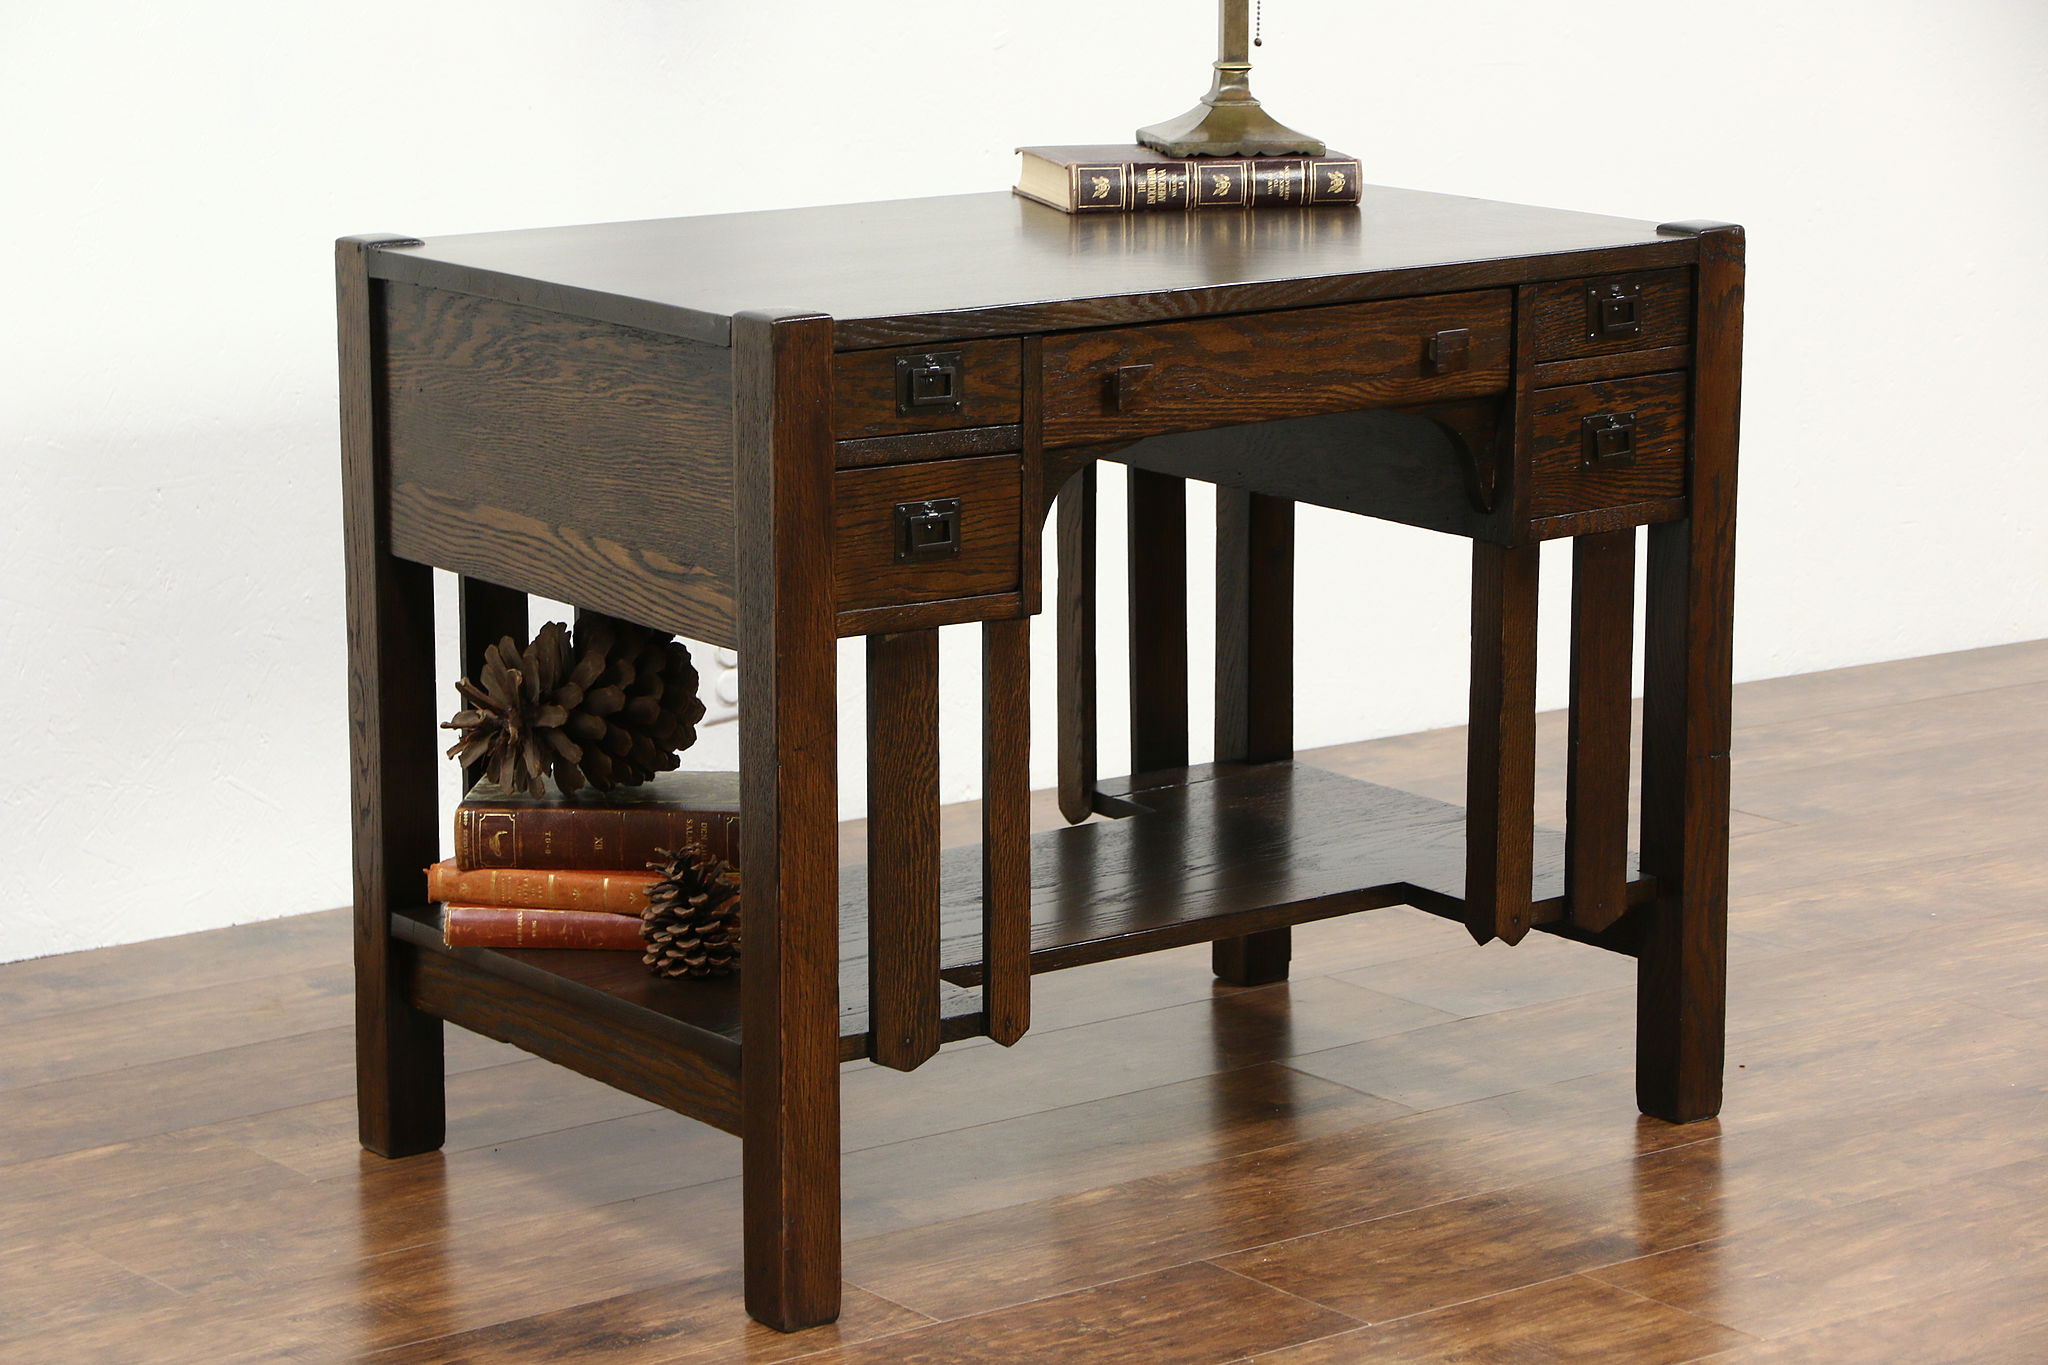 Arts and crafts tables - Arts Crafts Mission Oak 1905 Antique Library Table Writing Desk Bookshelf Ends